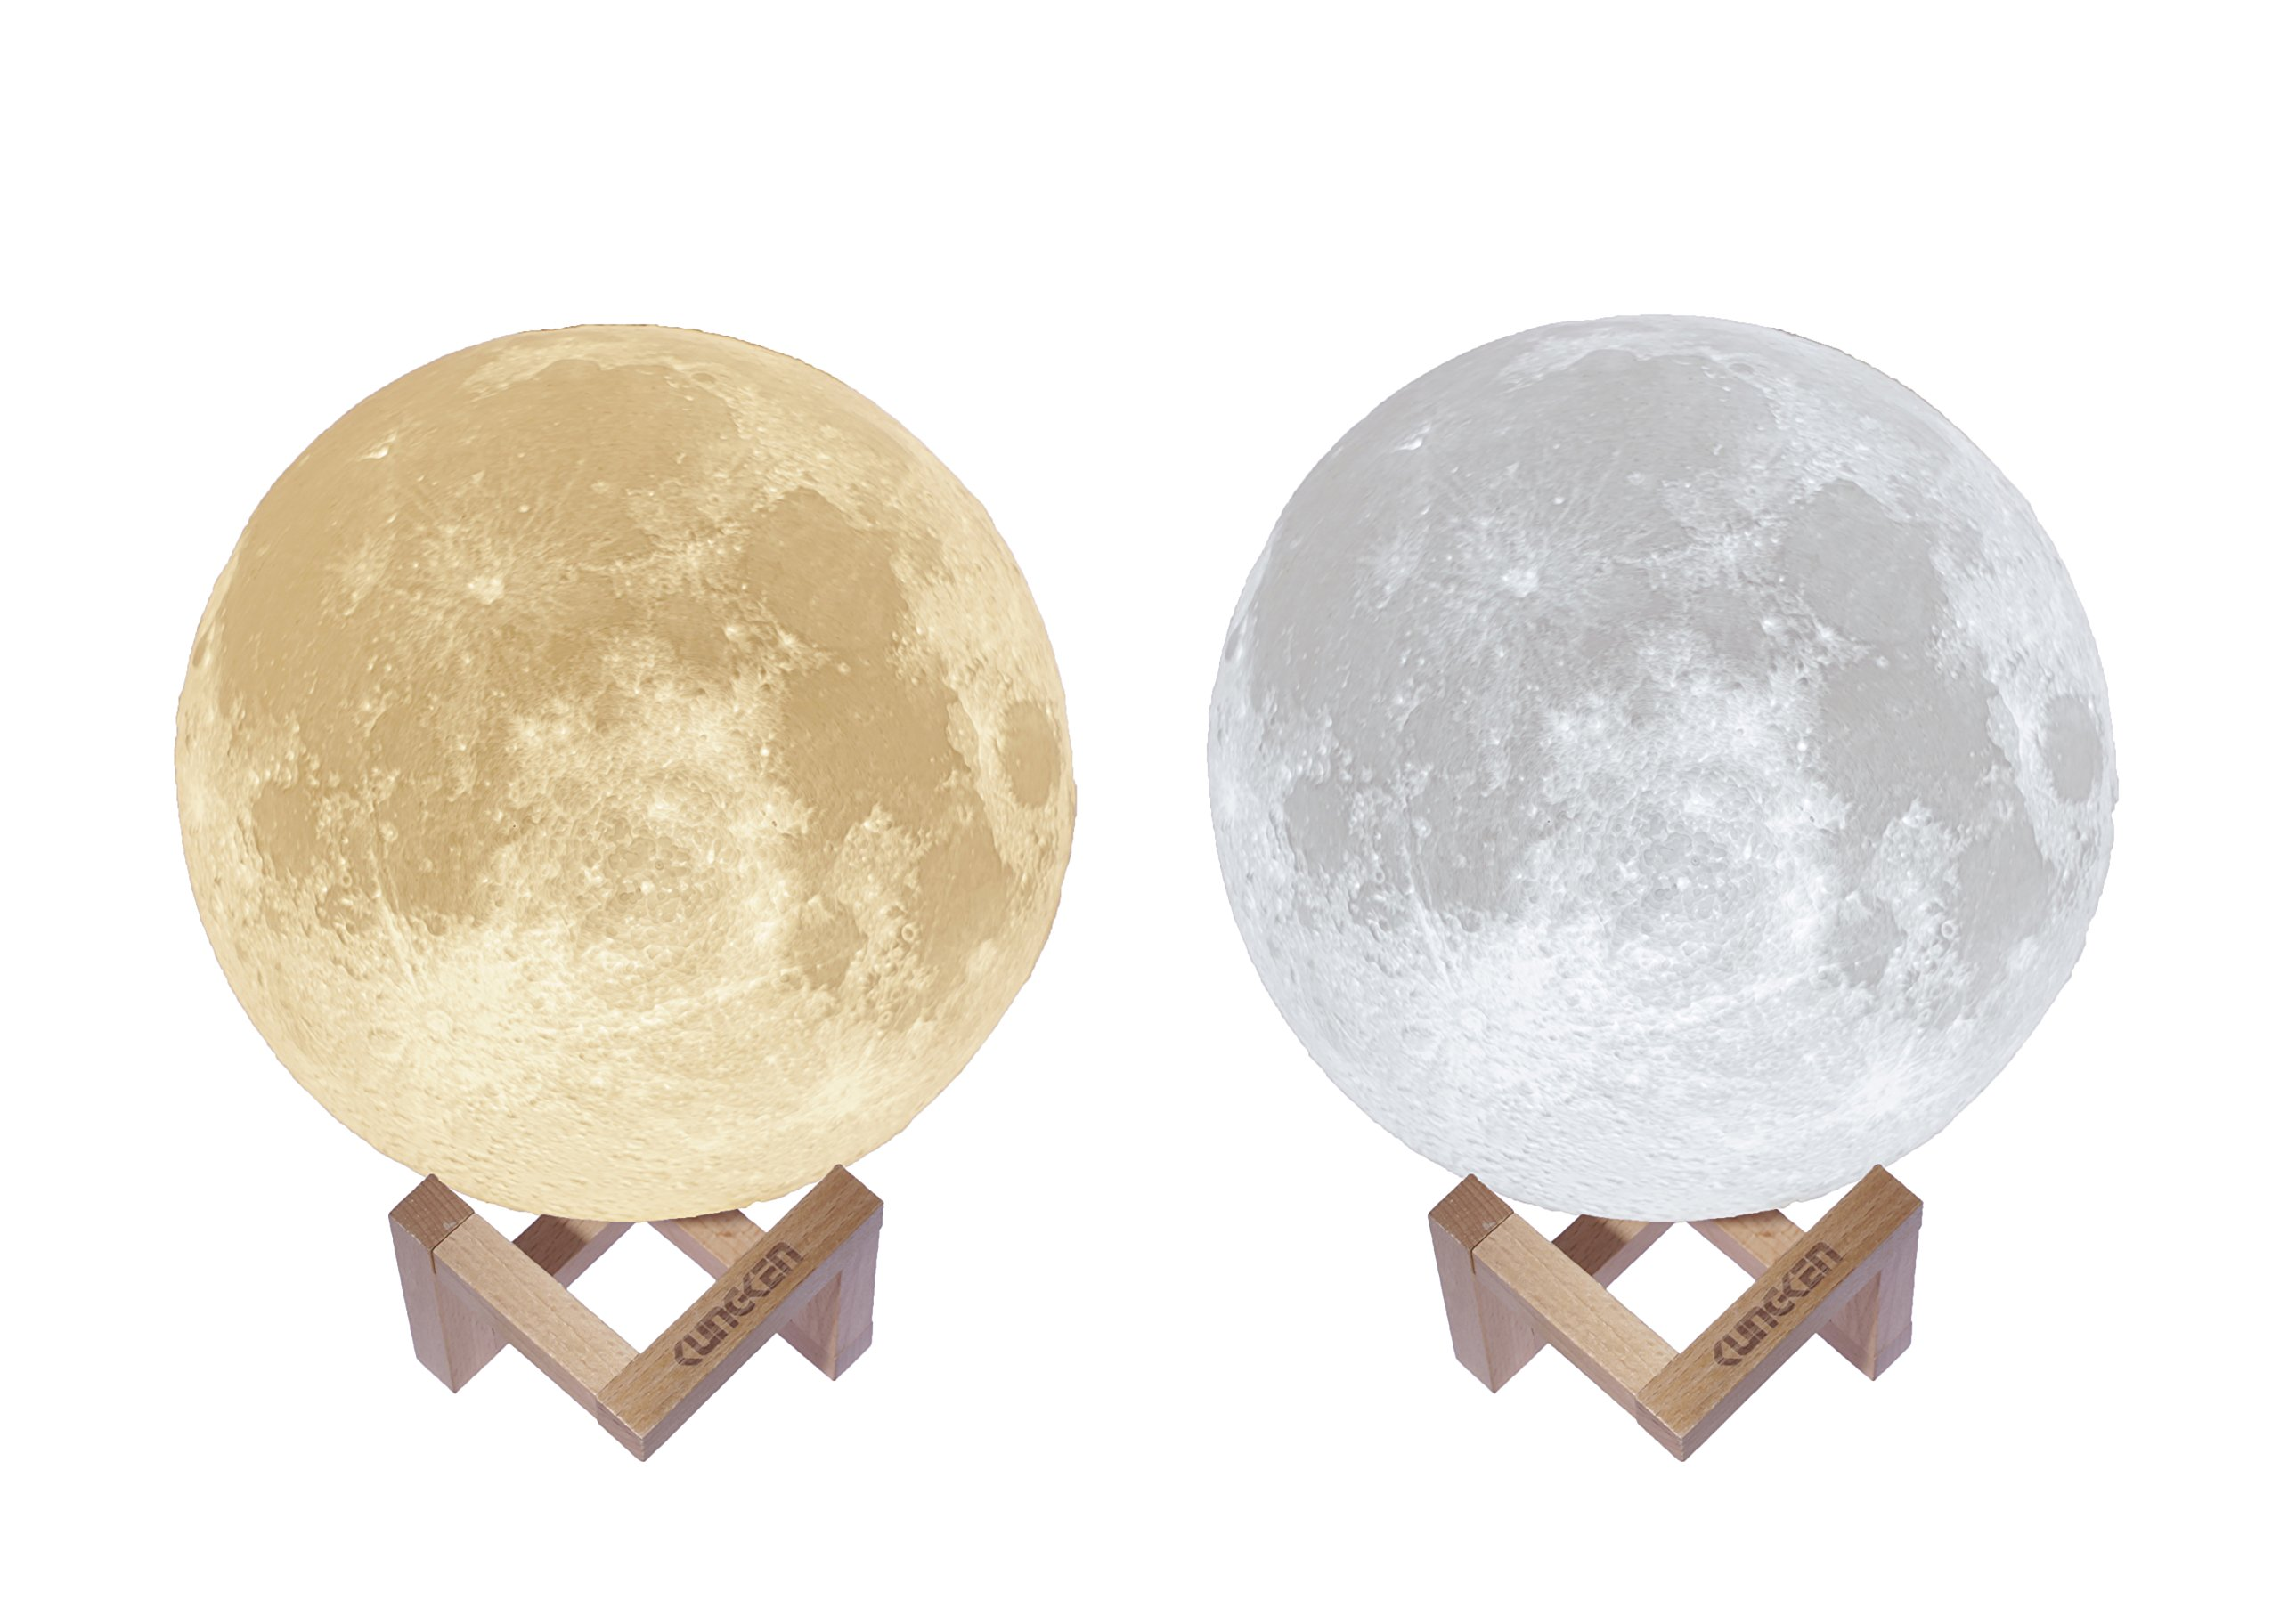 KUNGKEN Rechargeable 3D Printing Moon Lamp Touch Switch Luna Night Light Color And Brightness Adjustable With Wooden Mount 8.67IN